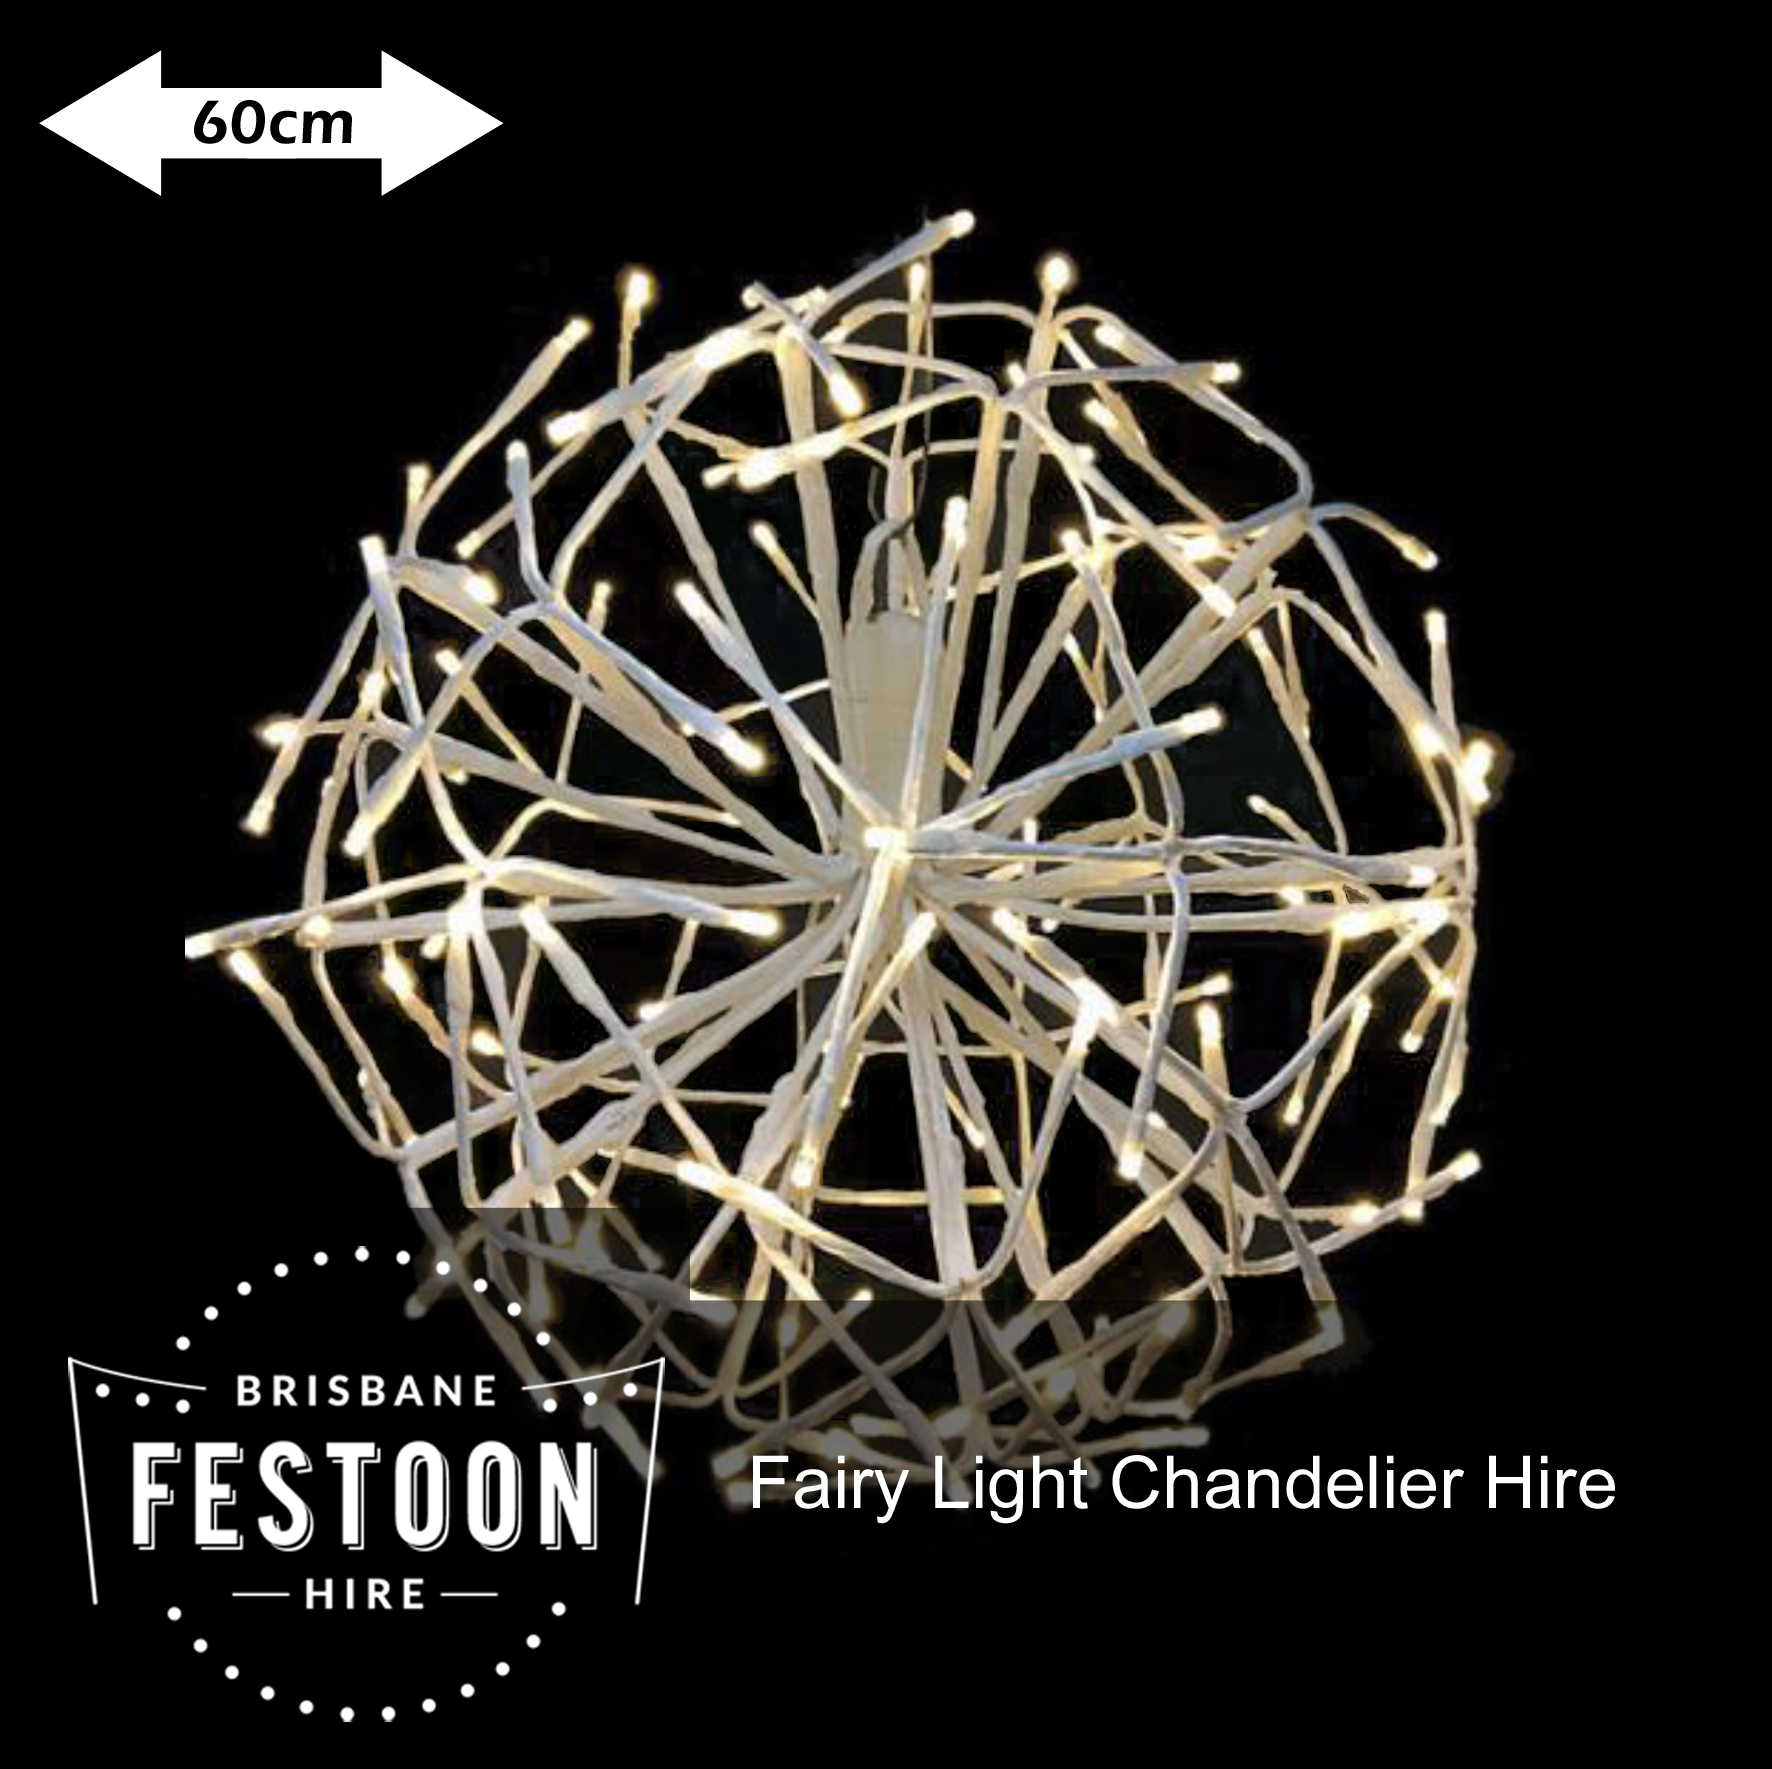 Brisbane Festoon Hire - Fairy Light Chandelier Hire 1.jpg